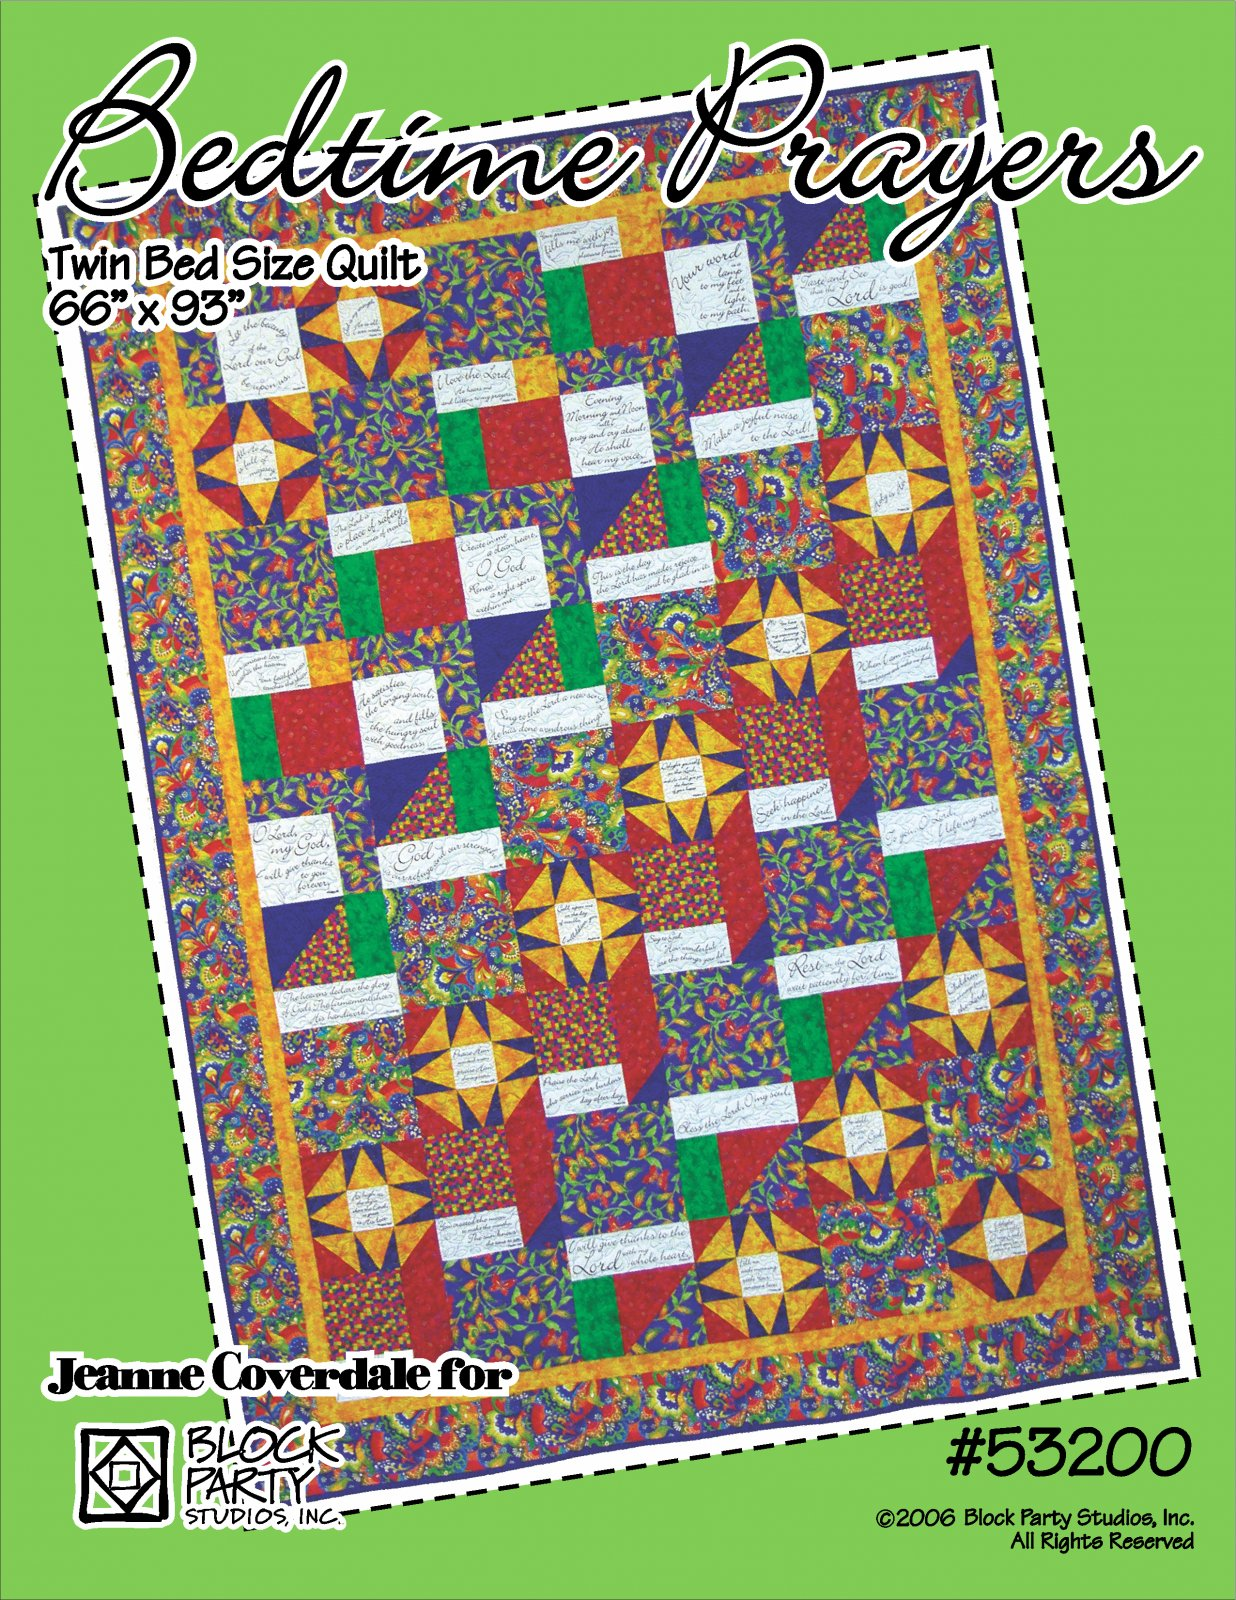 Bedtime Prayers Quilt Pattern and Panels